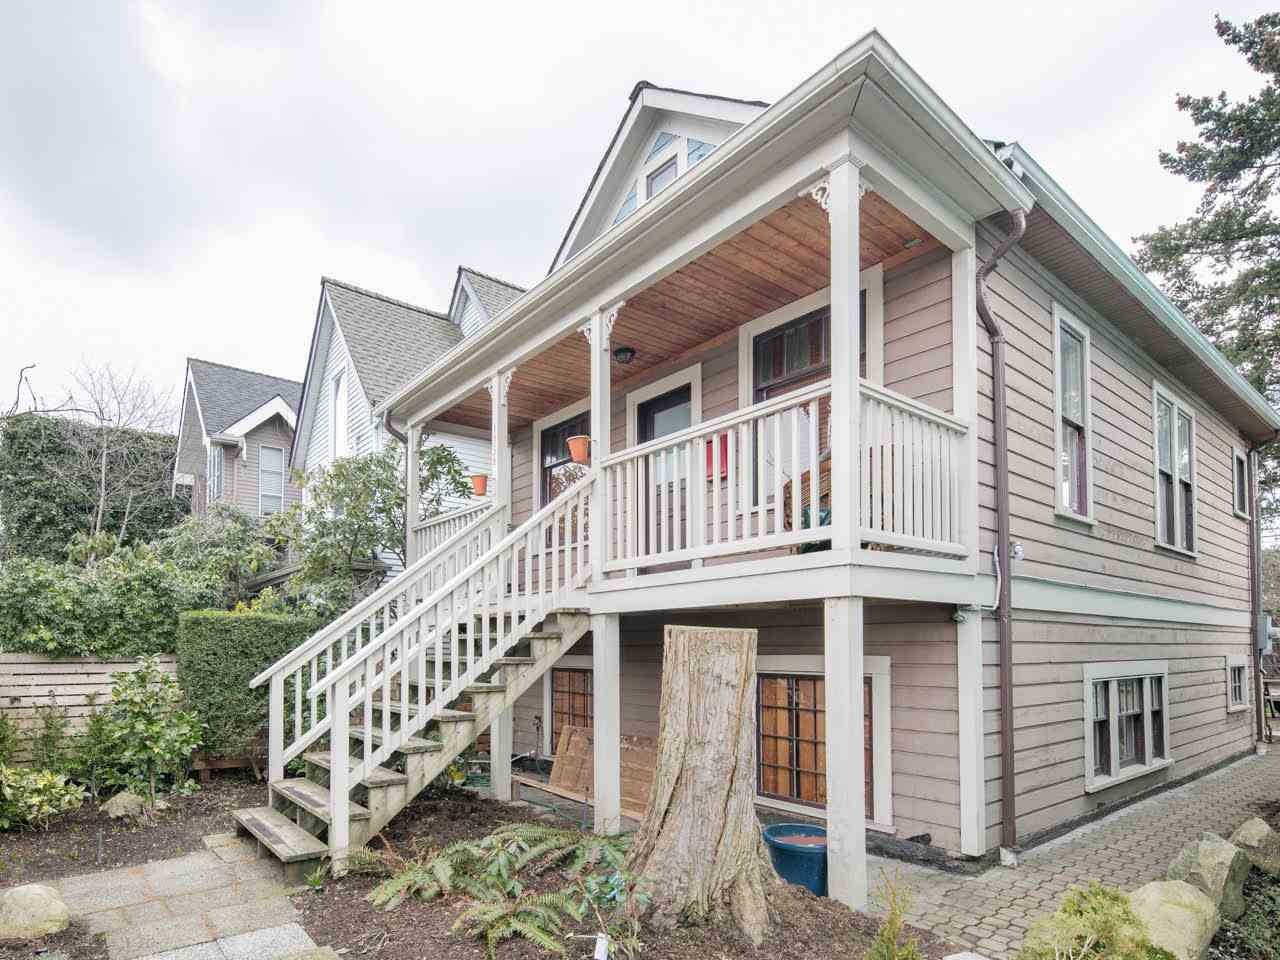 Main Photo: 1156 E PENDER STREET in Vancouver: Mount Pleasant VE House for sale (Vancouver East)  : MLS®# R2143773